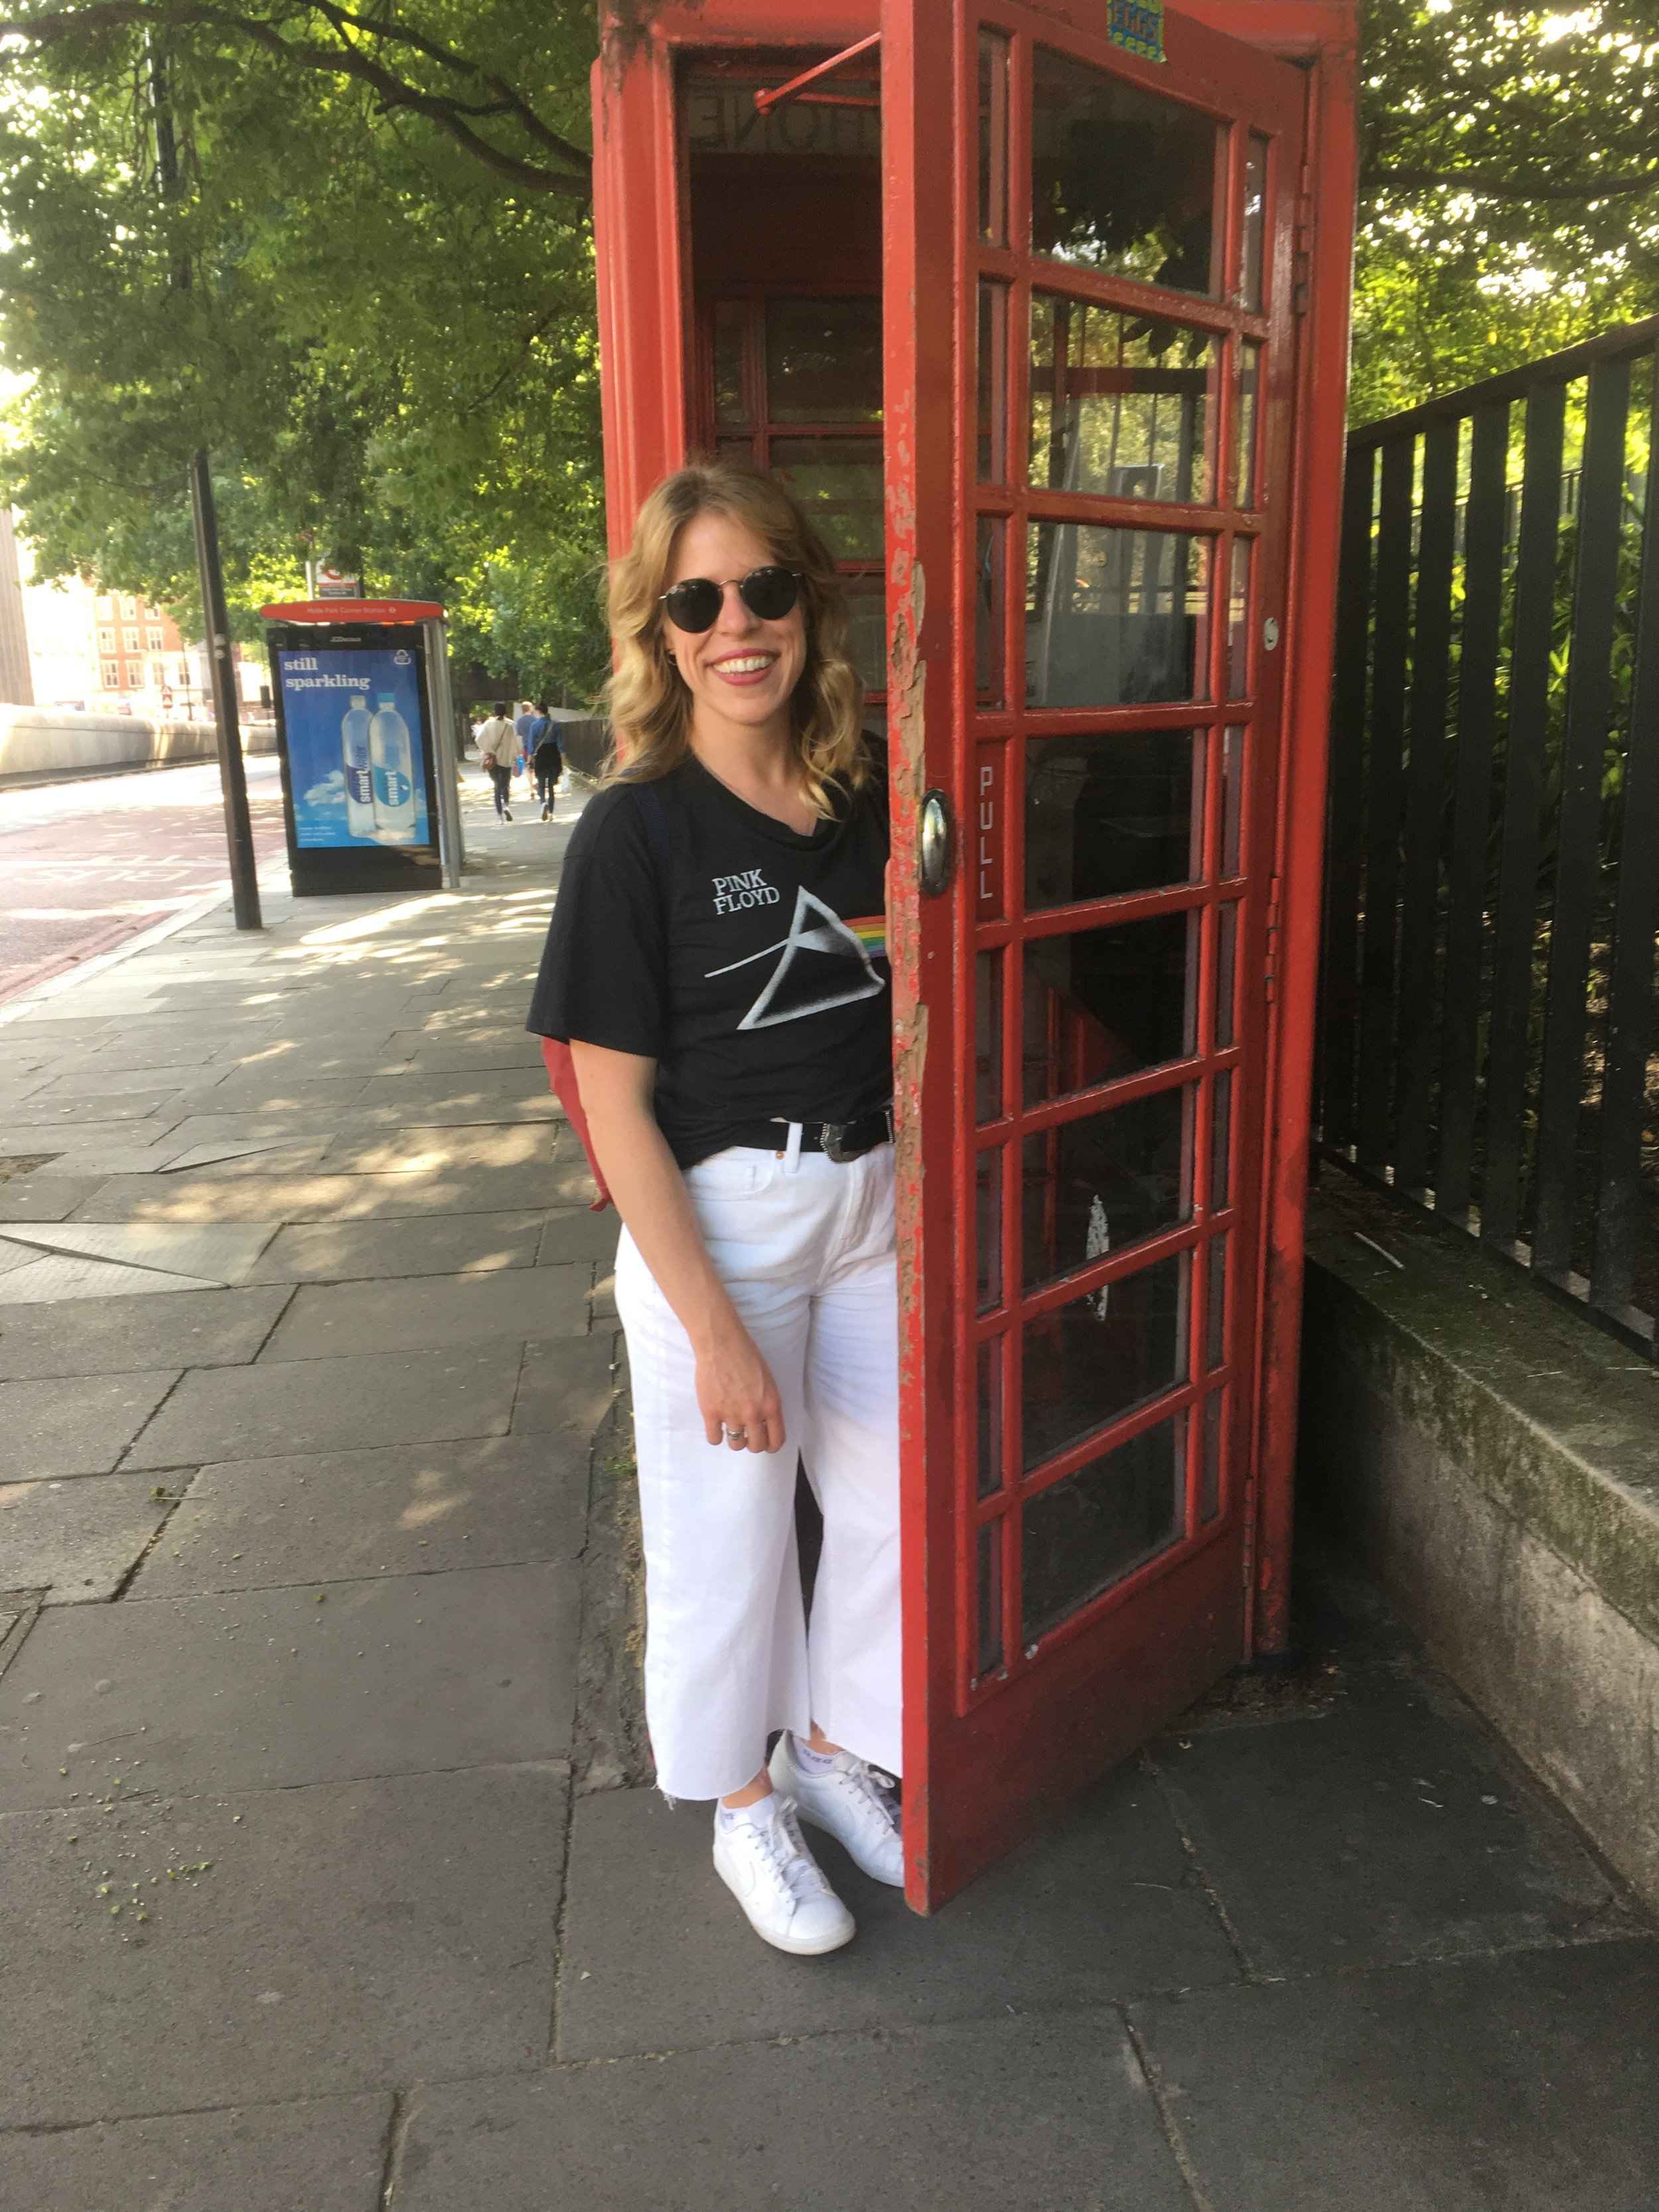 Another tourist shot, posing in a phone booth will never get old!